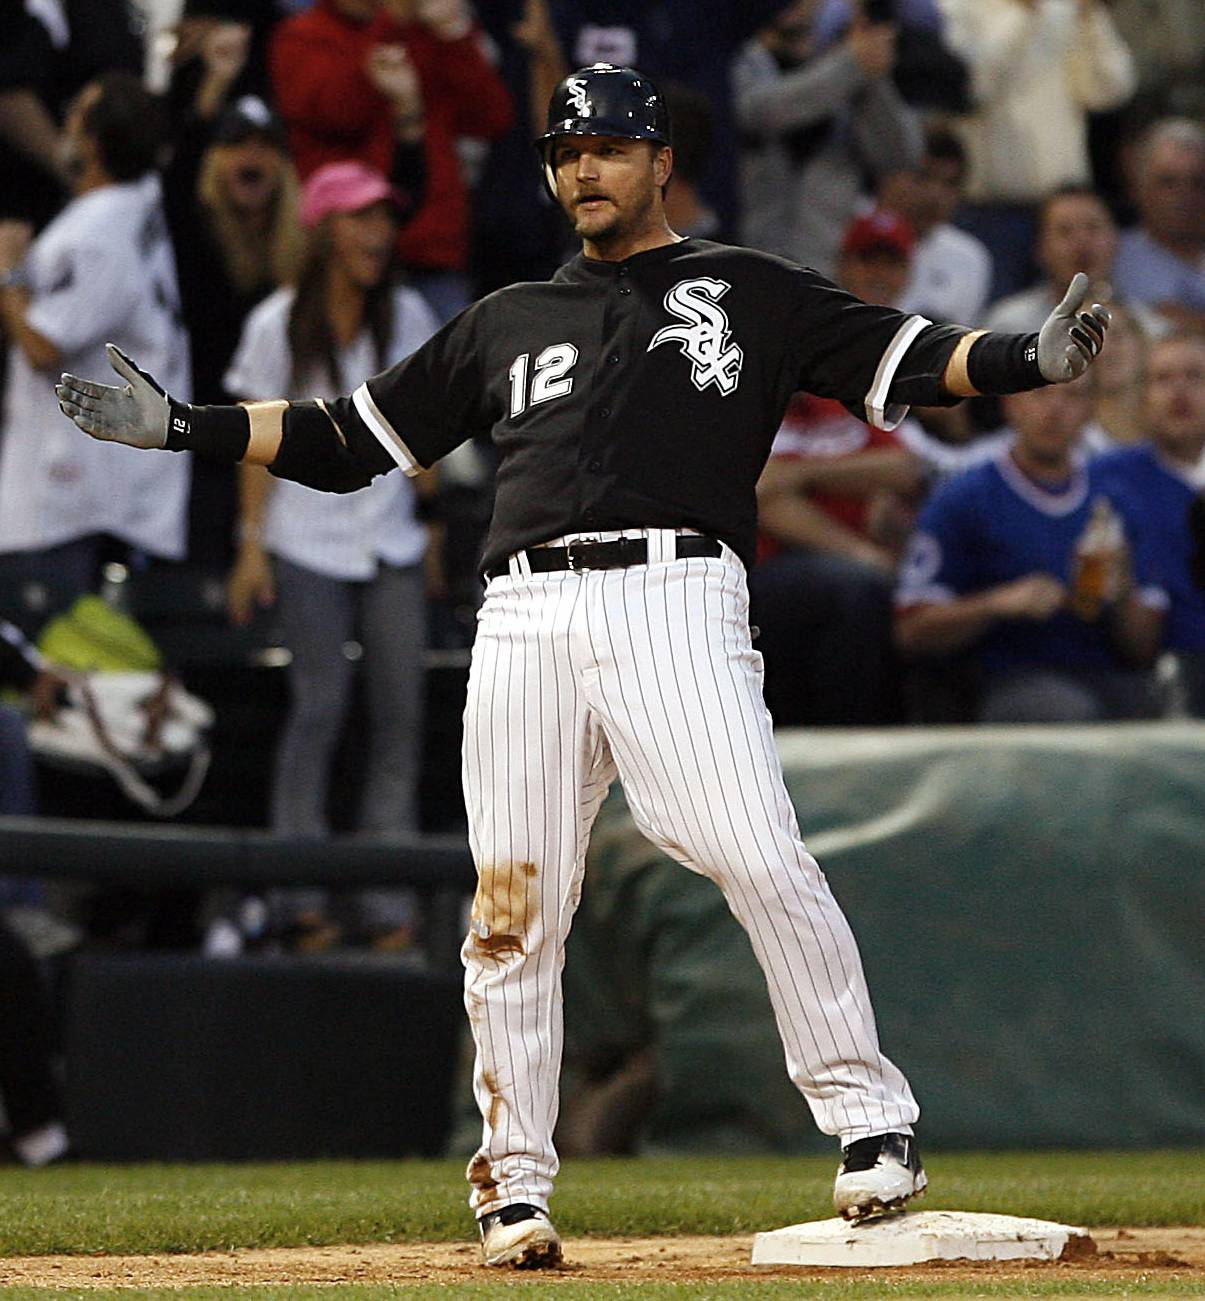 Pierzynski in the middle of another Sox win